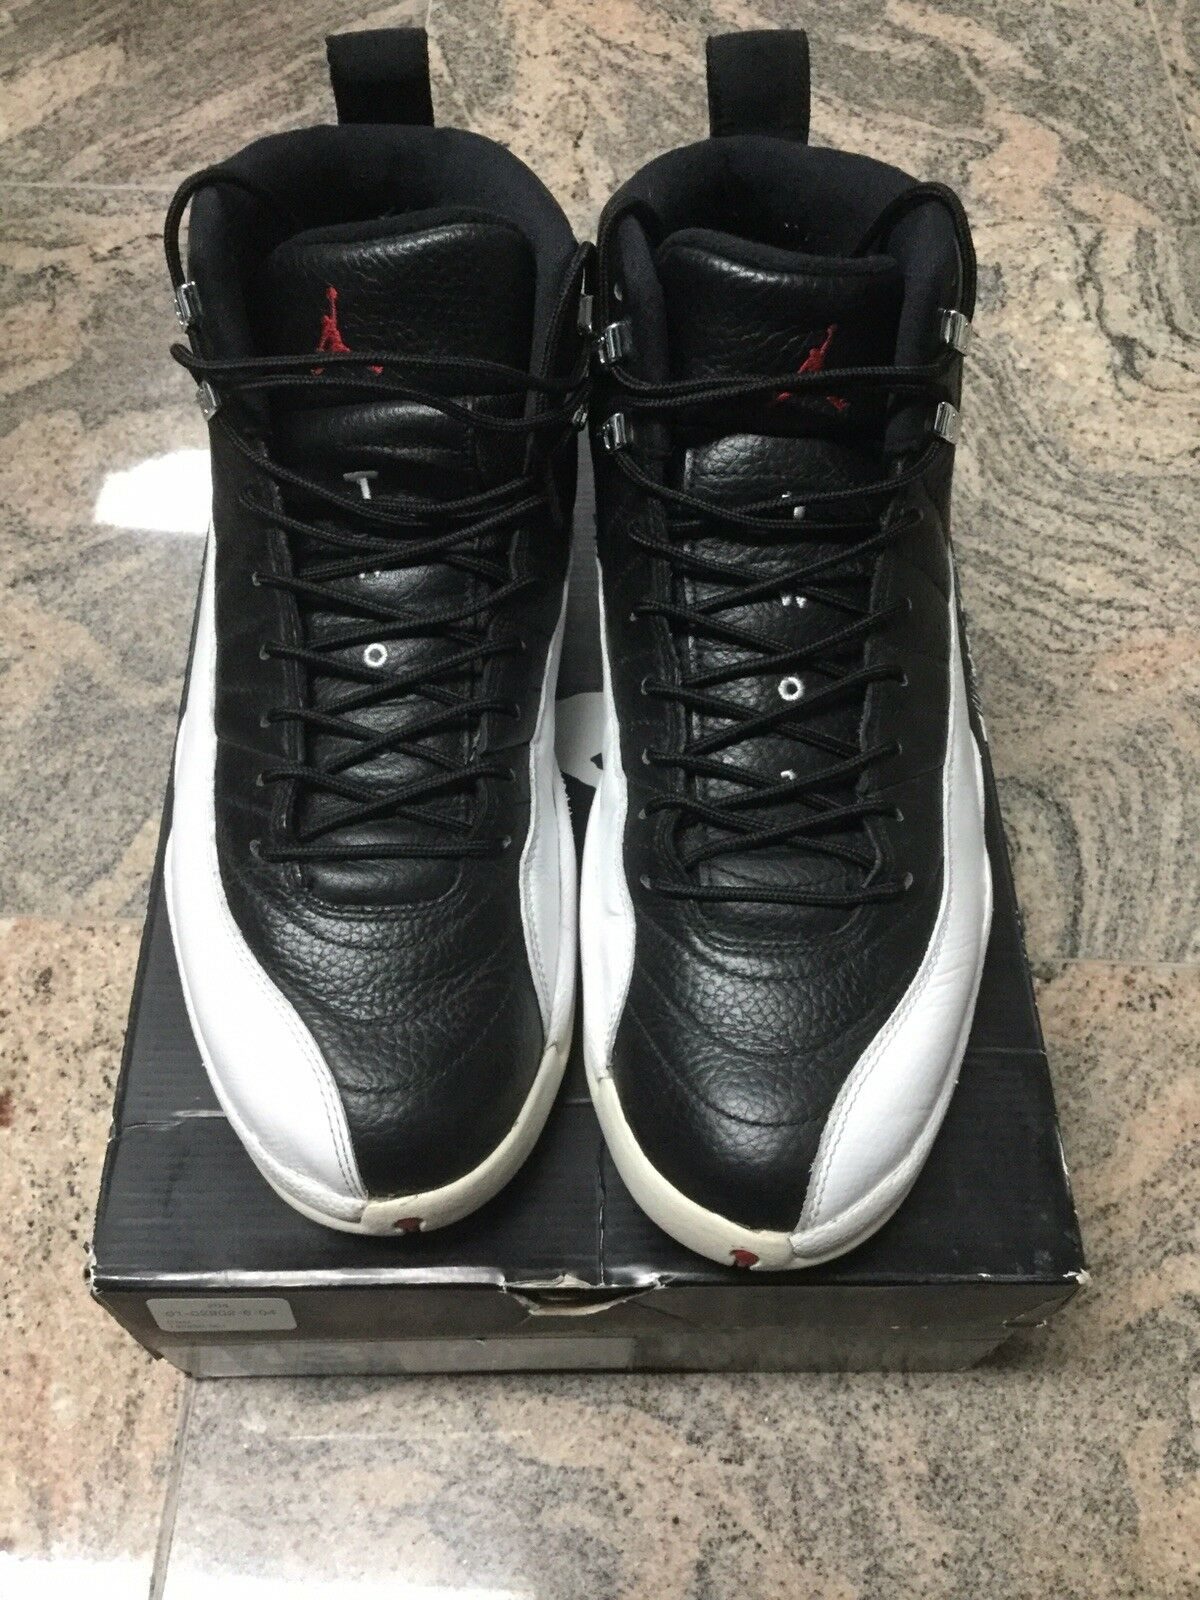 Air Jordan 12 Playoff Size 13